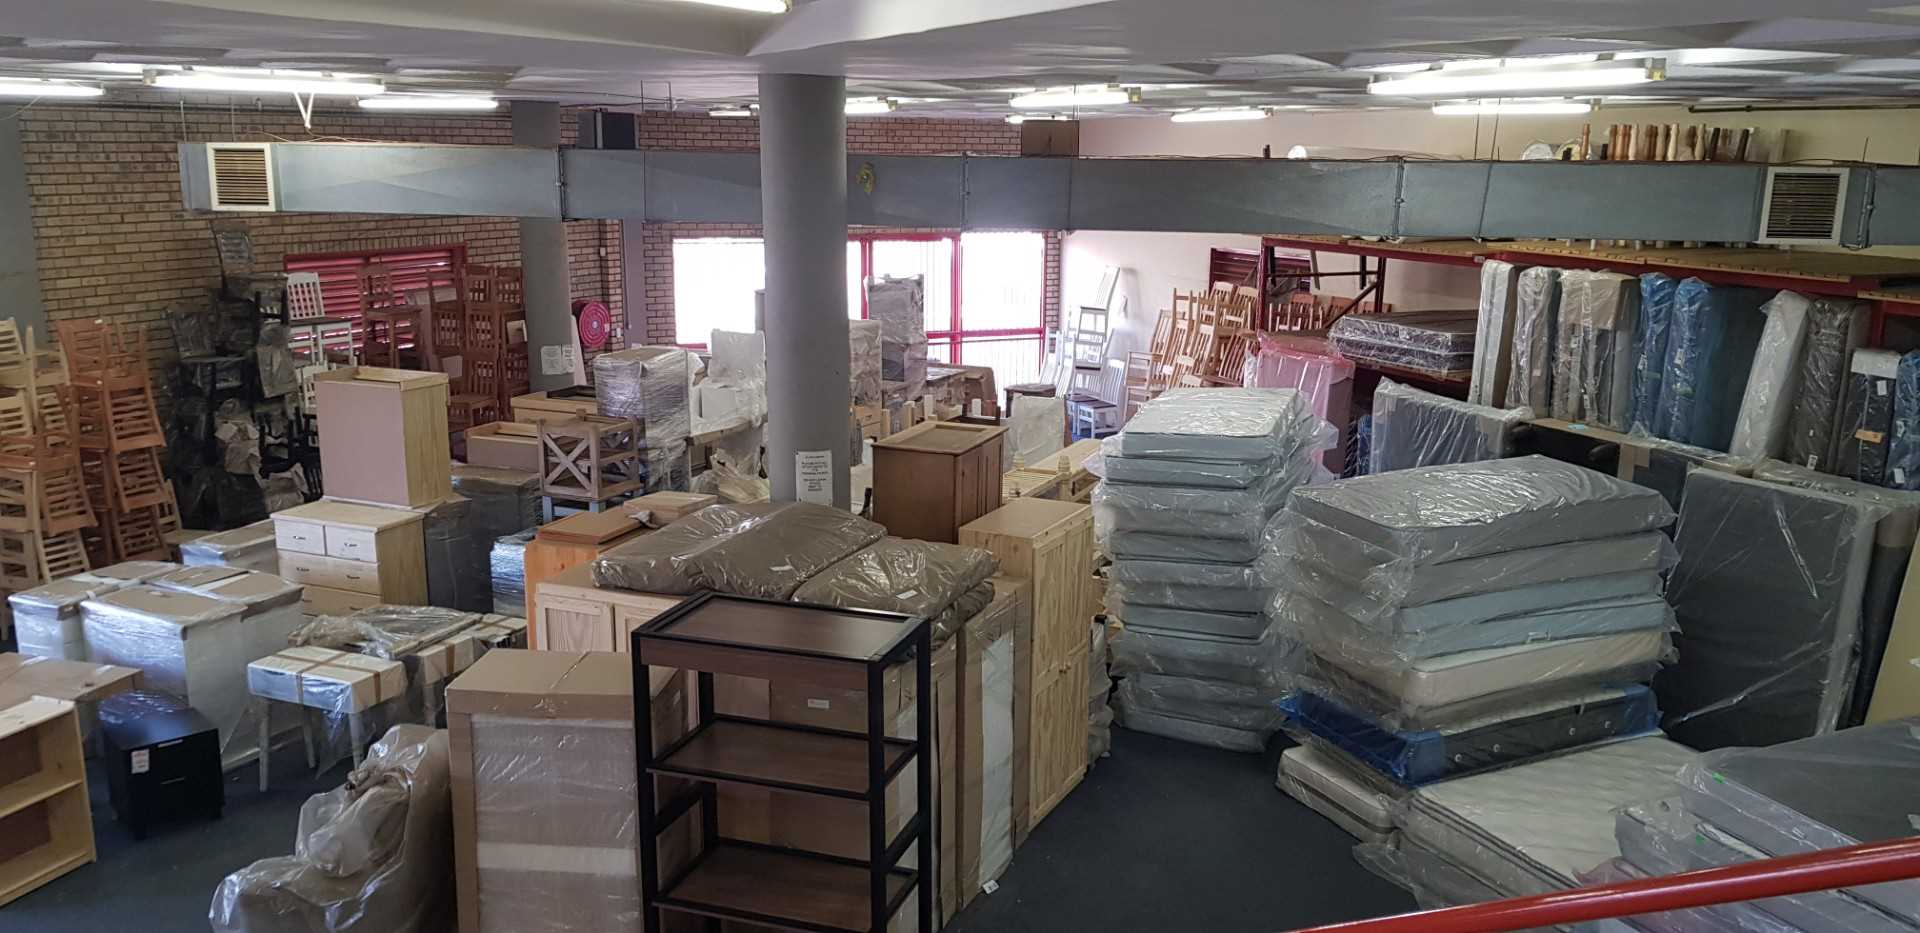 Warehouse storage section